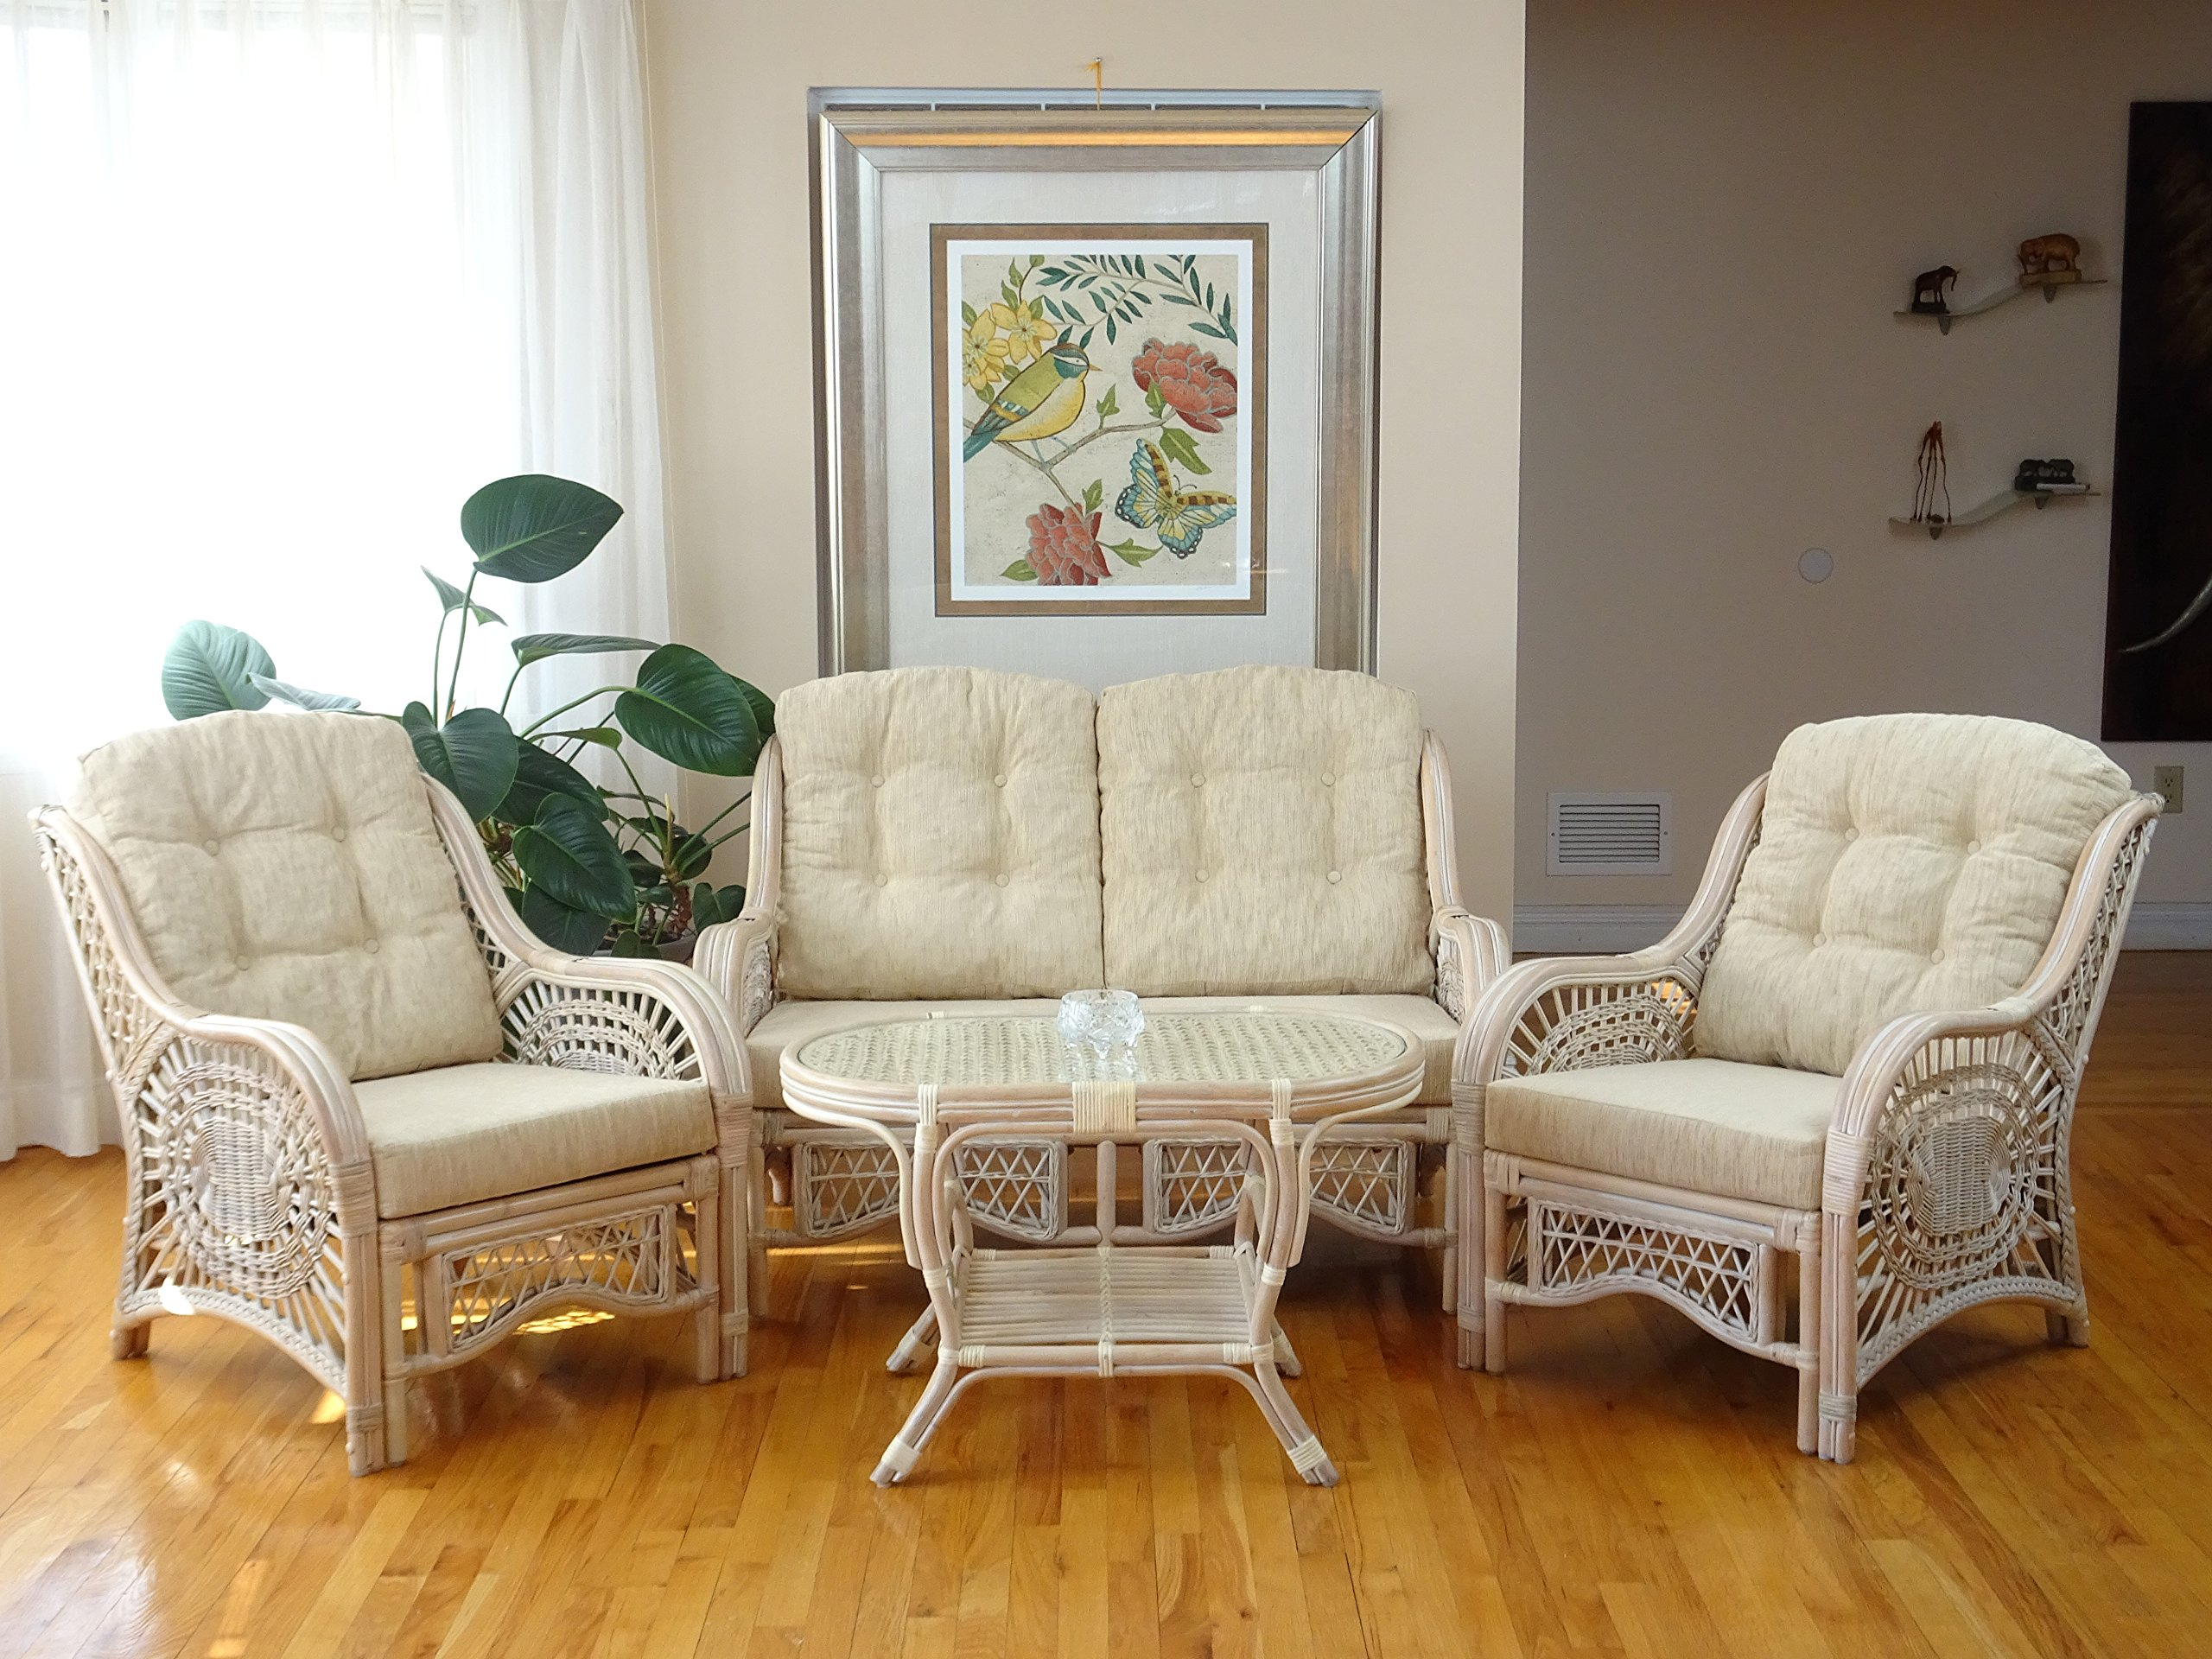 Malibu Lounge Set of 2 Natural ECO Rattan Wicker Chairs, Loveseat with Cream Cushion and Coffee Table w/Glass Handmade, Cream